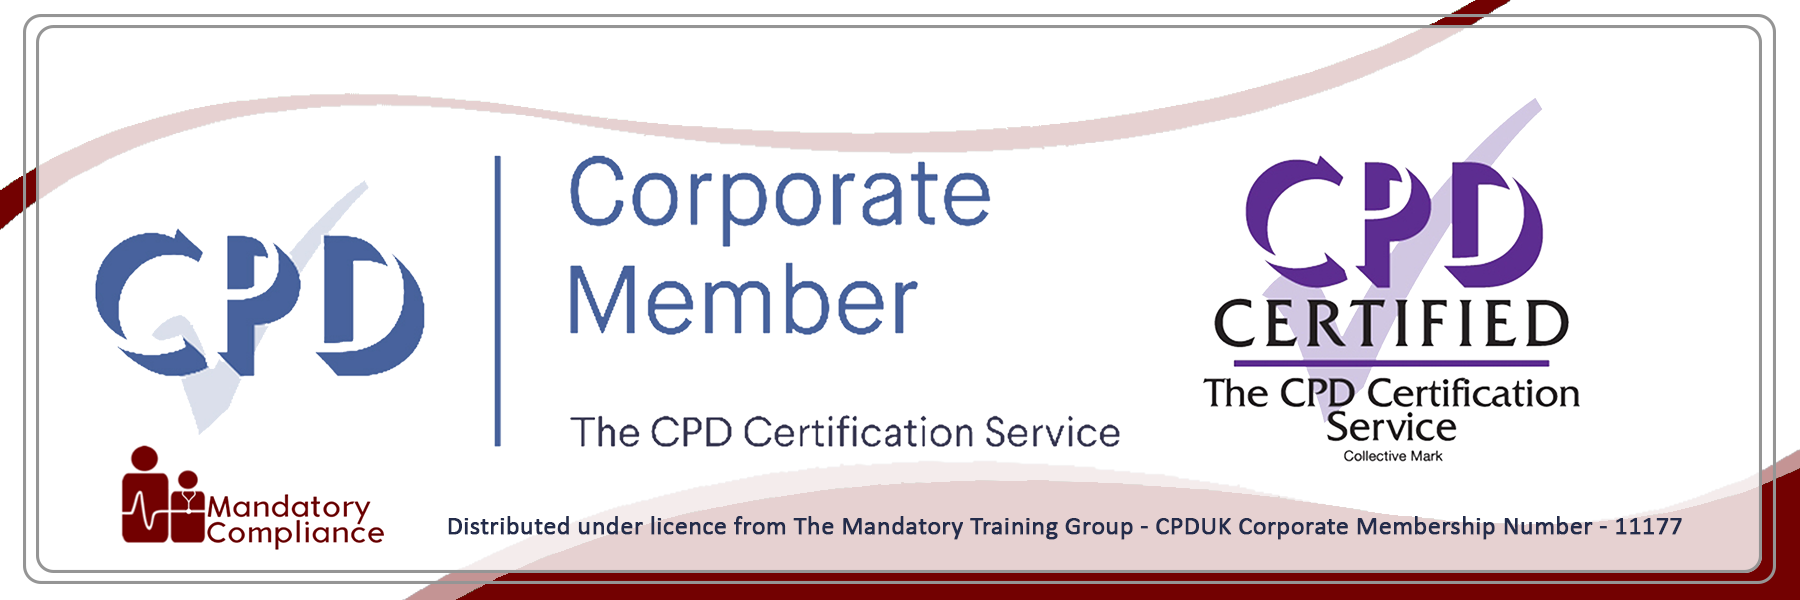 Care Certificate Standard 12 - Train the Trainer - The Mandatory Compliance UK -